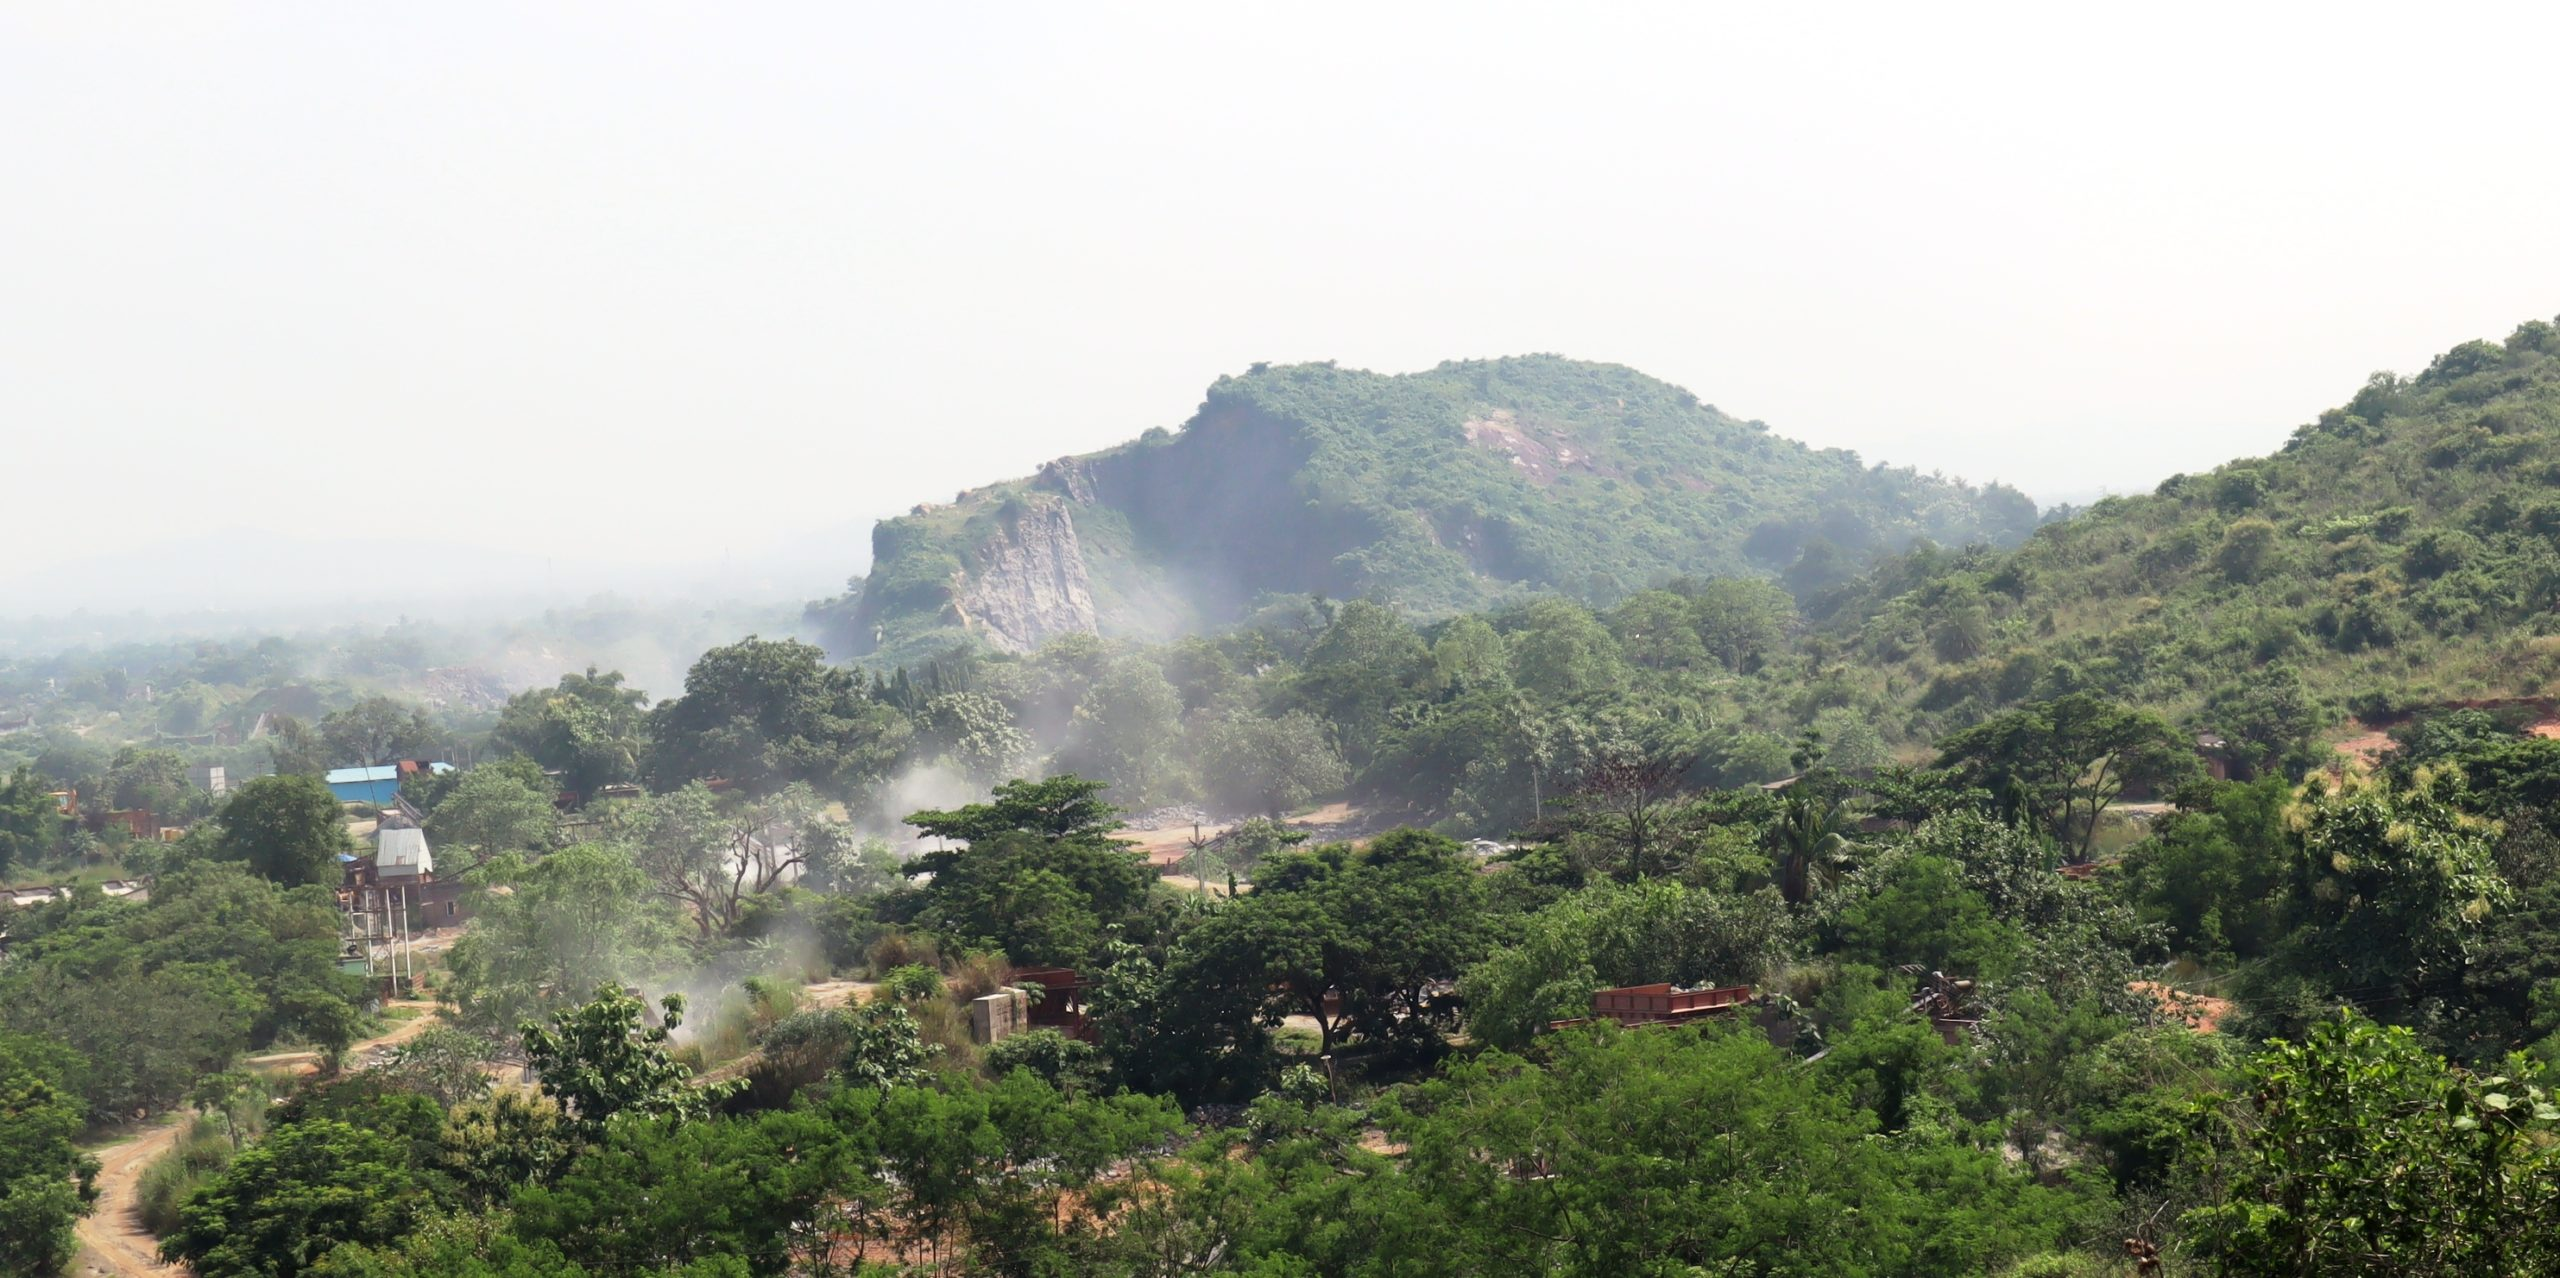 Dust emanating from the stone crushing units in the hills of Khurda. Photo by Manish Kumar.